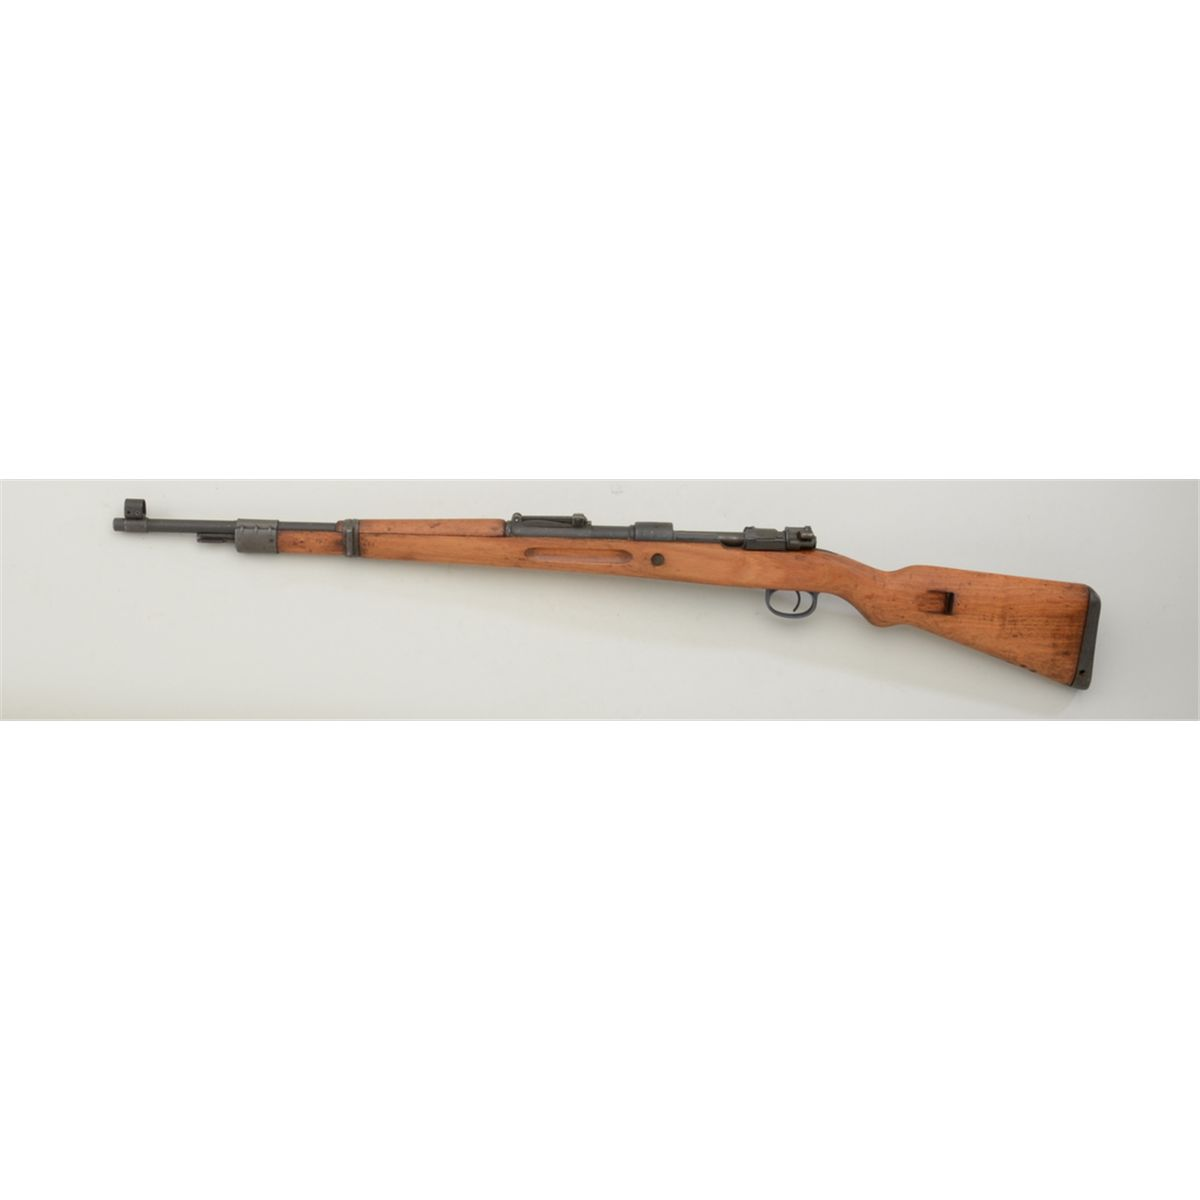 """Brno Mauser bolt-action military rifle, 7 62mm cal , 24"""" barrel,  re-parkerized finish, wood stock,"""